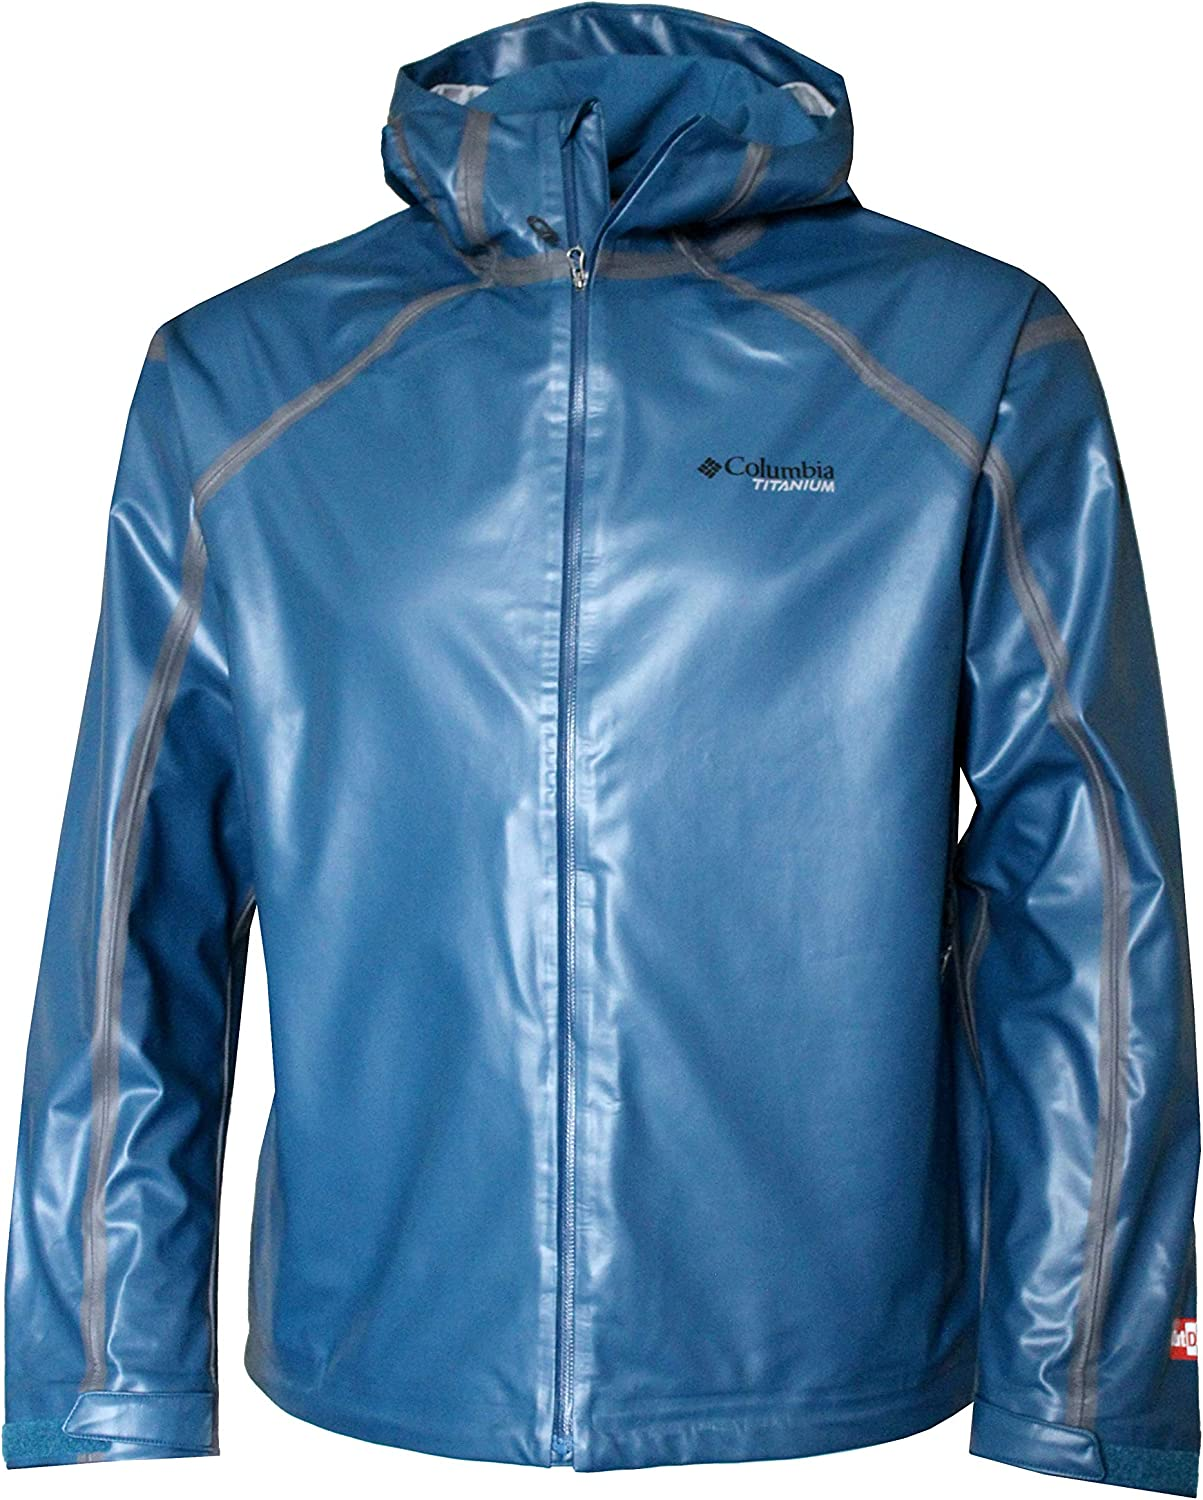 COLUMBIA NEW MEN/'S HARDY ROAD OUTDRY EXTREME TITANIUM BREATHABLE RAIN JACKET NWT